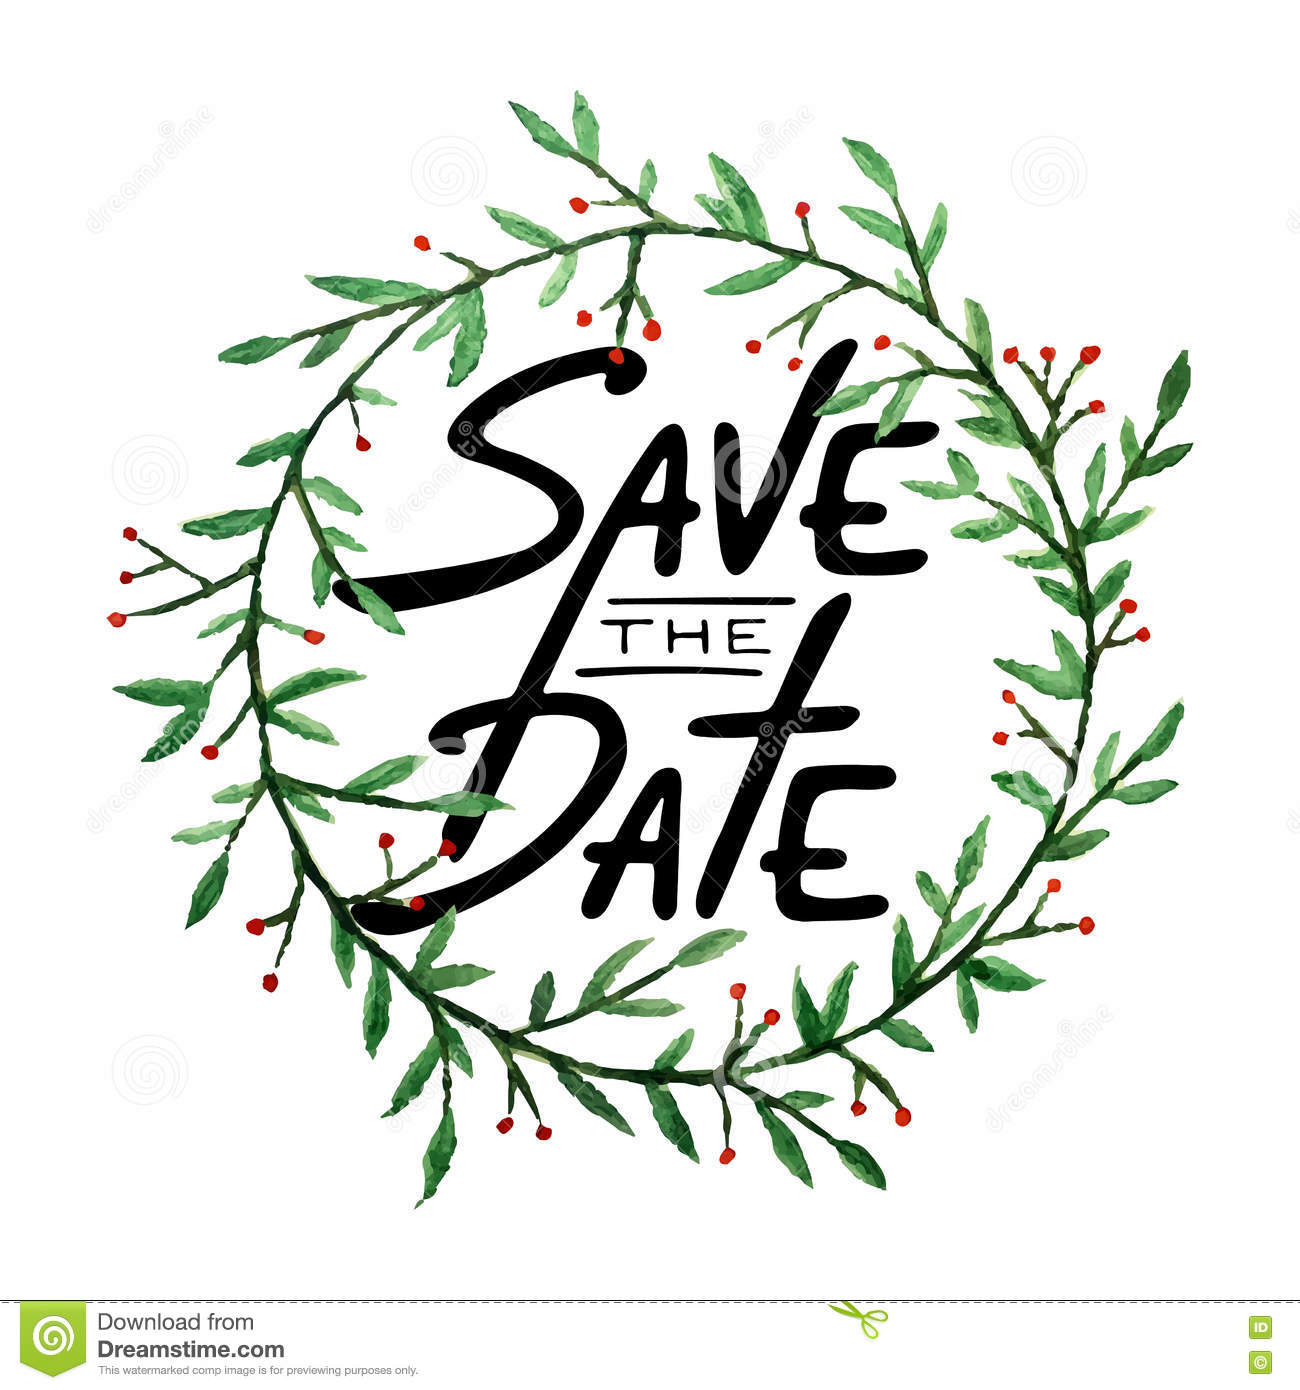 Christmas Save The Date Graphics.Save The Date Invite Greeting Card Vector Template Stock